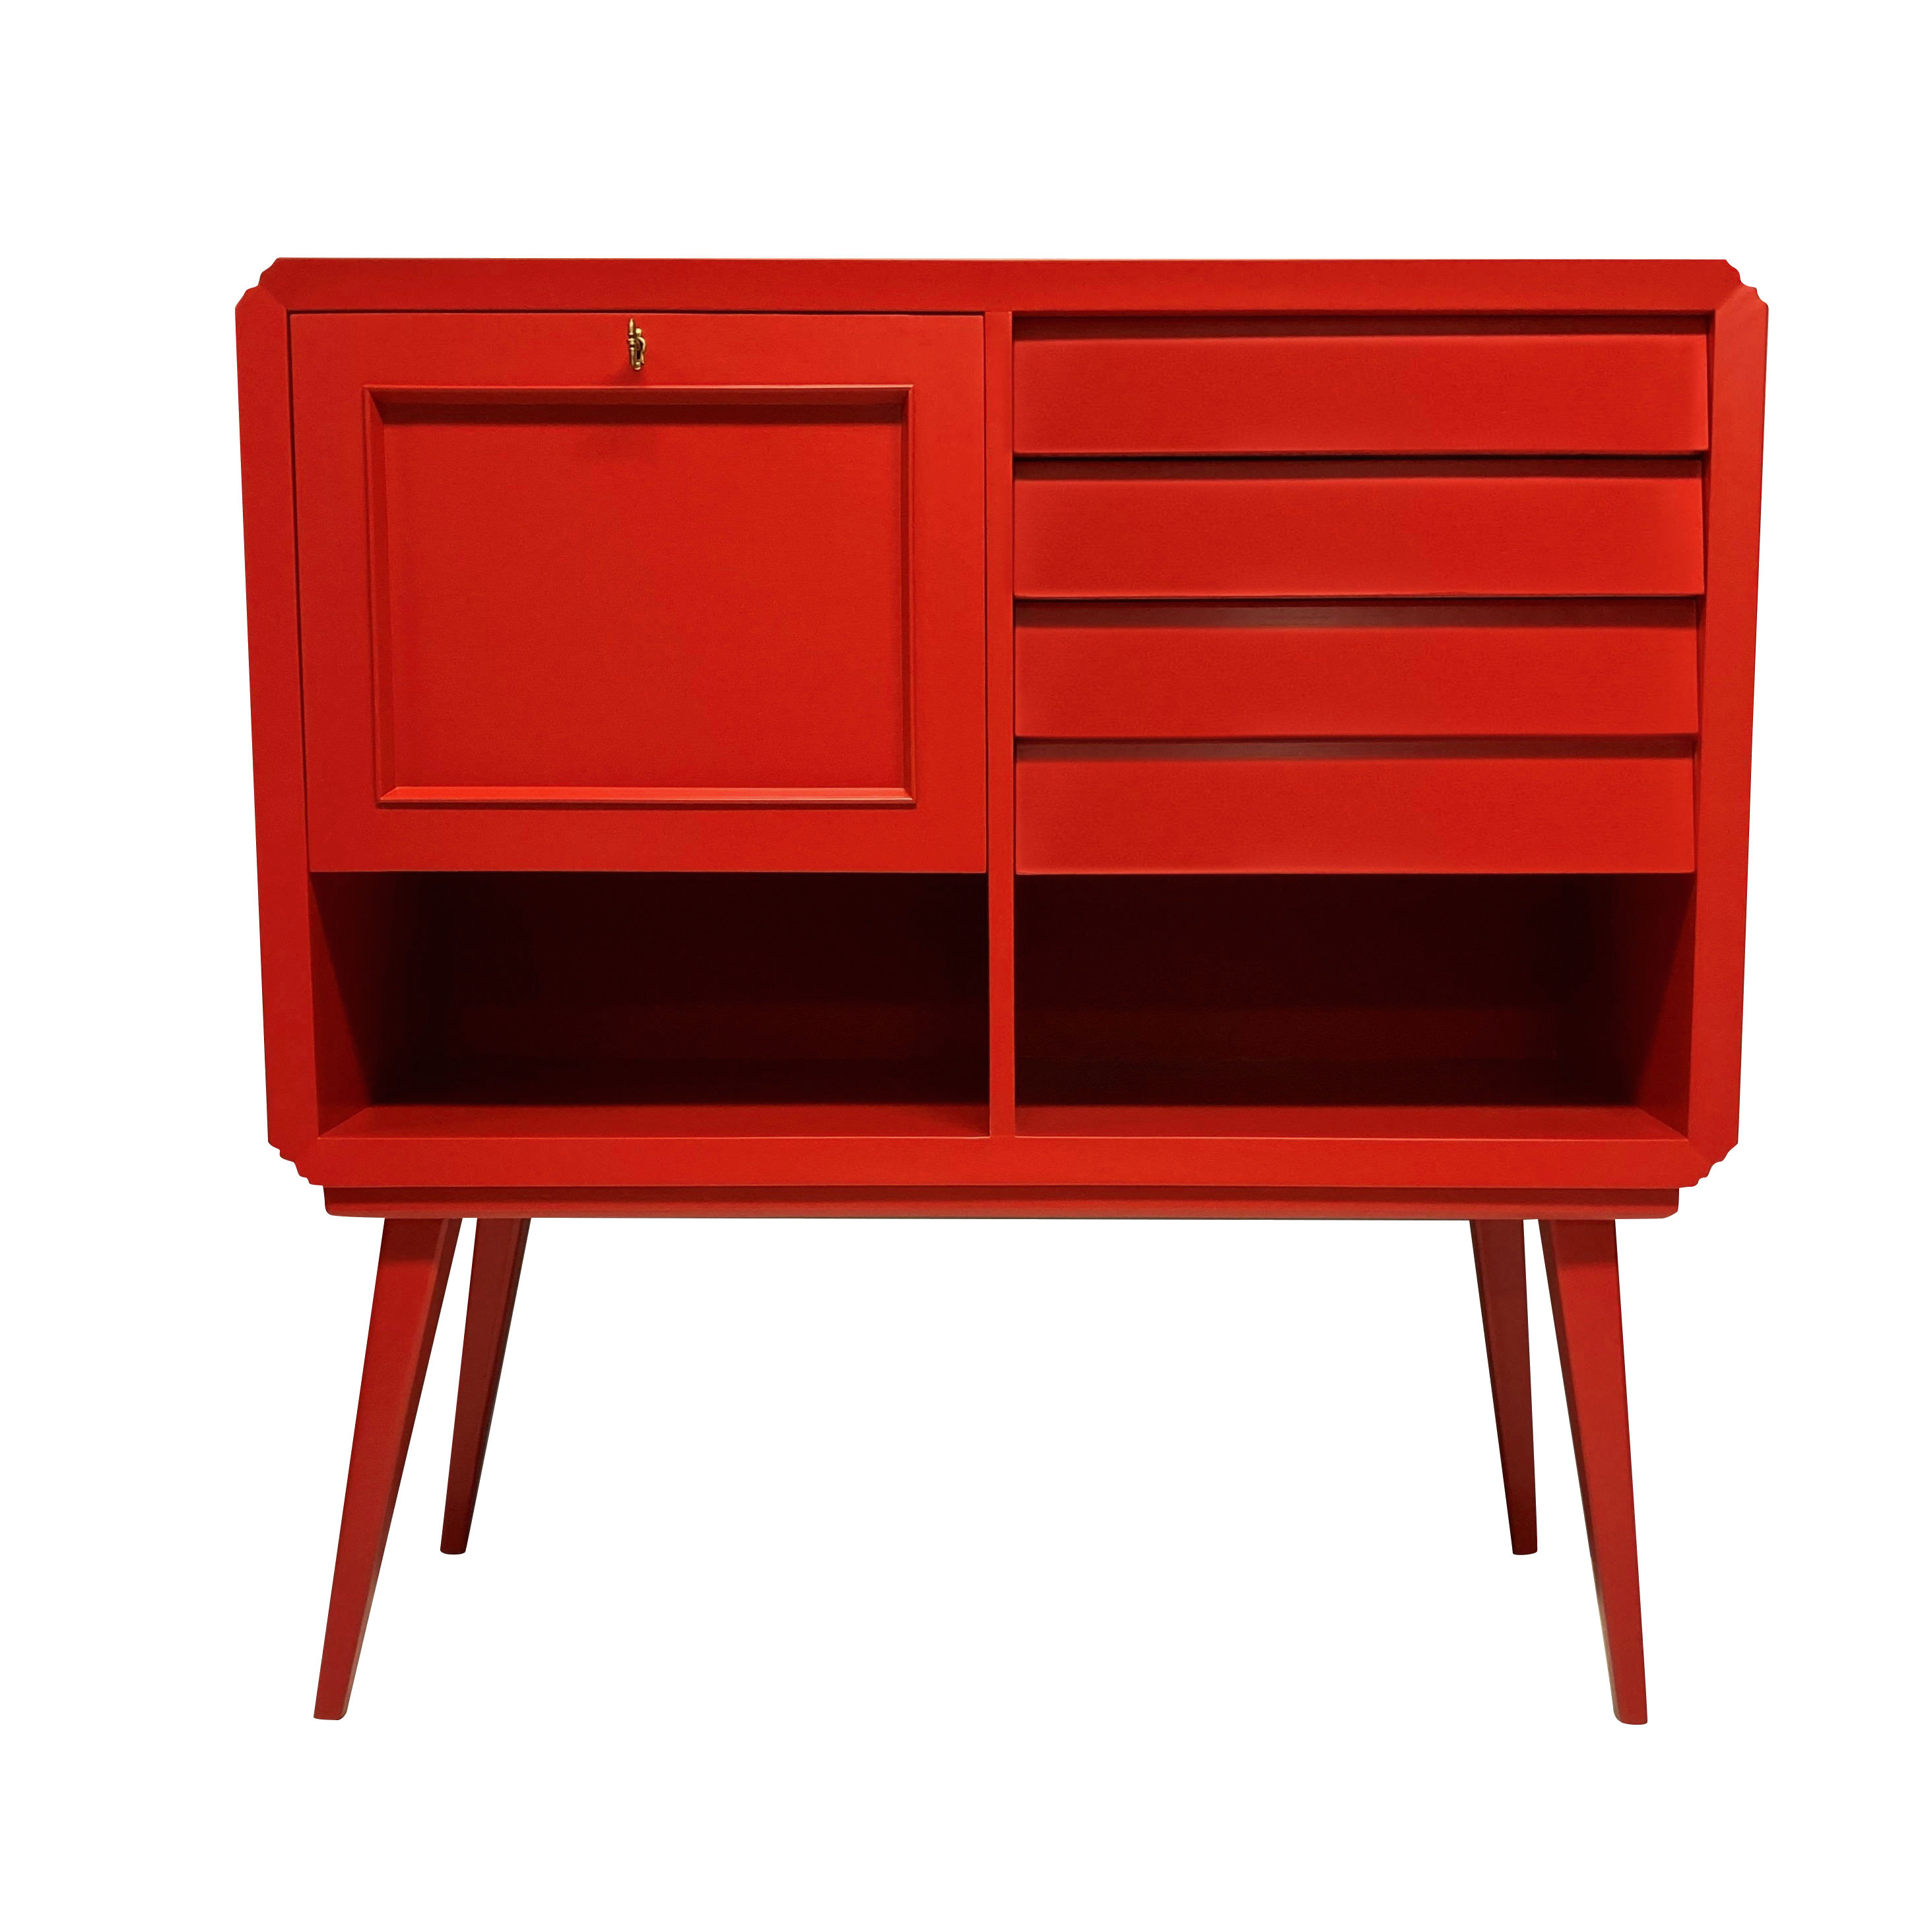 AN ITALIAN MID-CENTURY SCARLET LACQUERED BAR CABINET